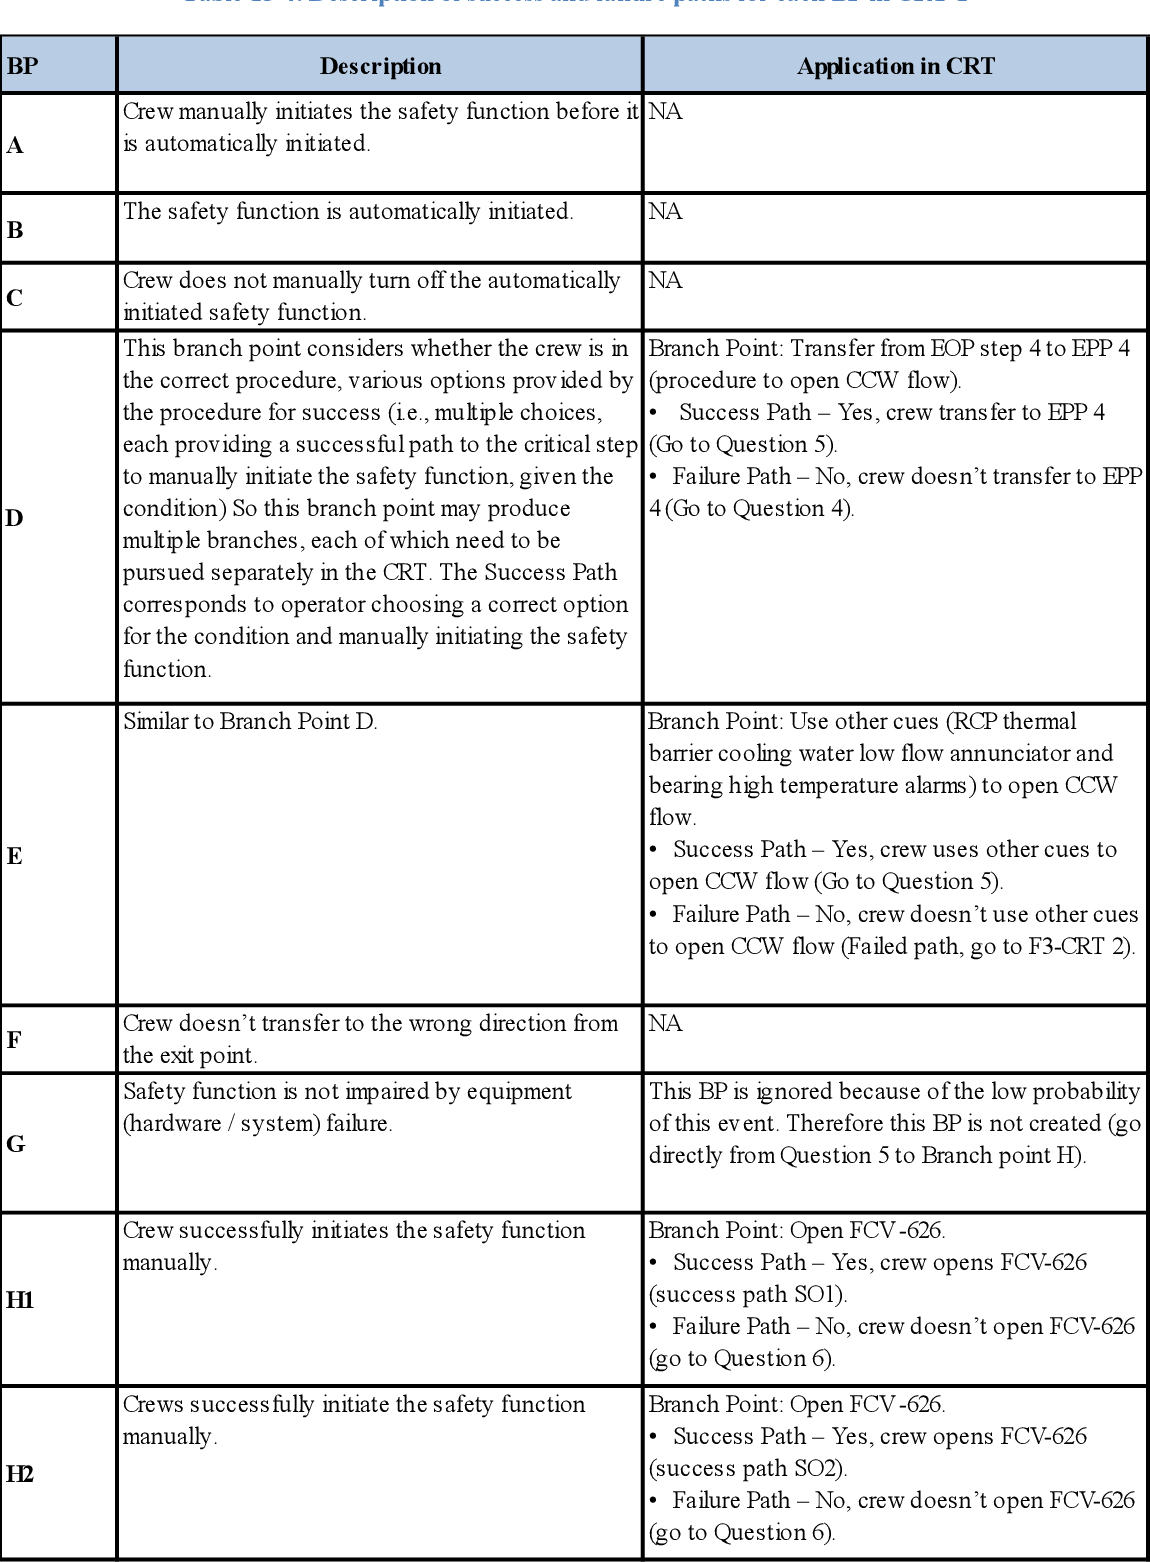 Table 15-5 from A MODEL-BASED HUMAN RELIABILITY ANALYSIS